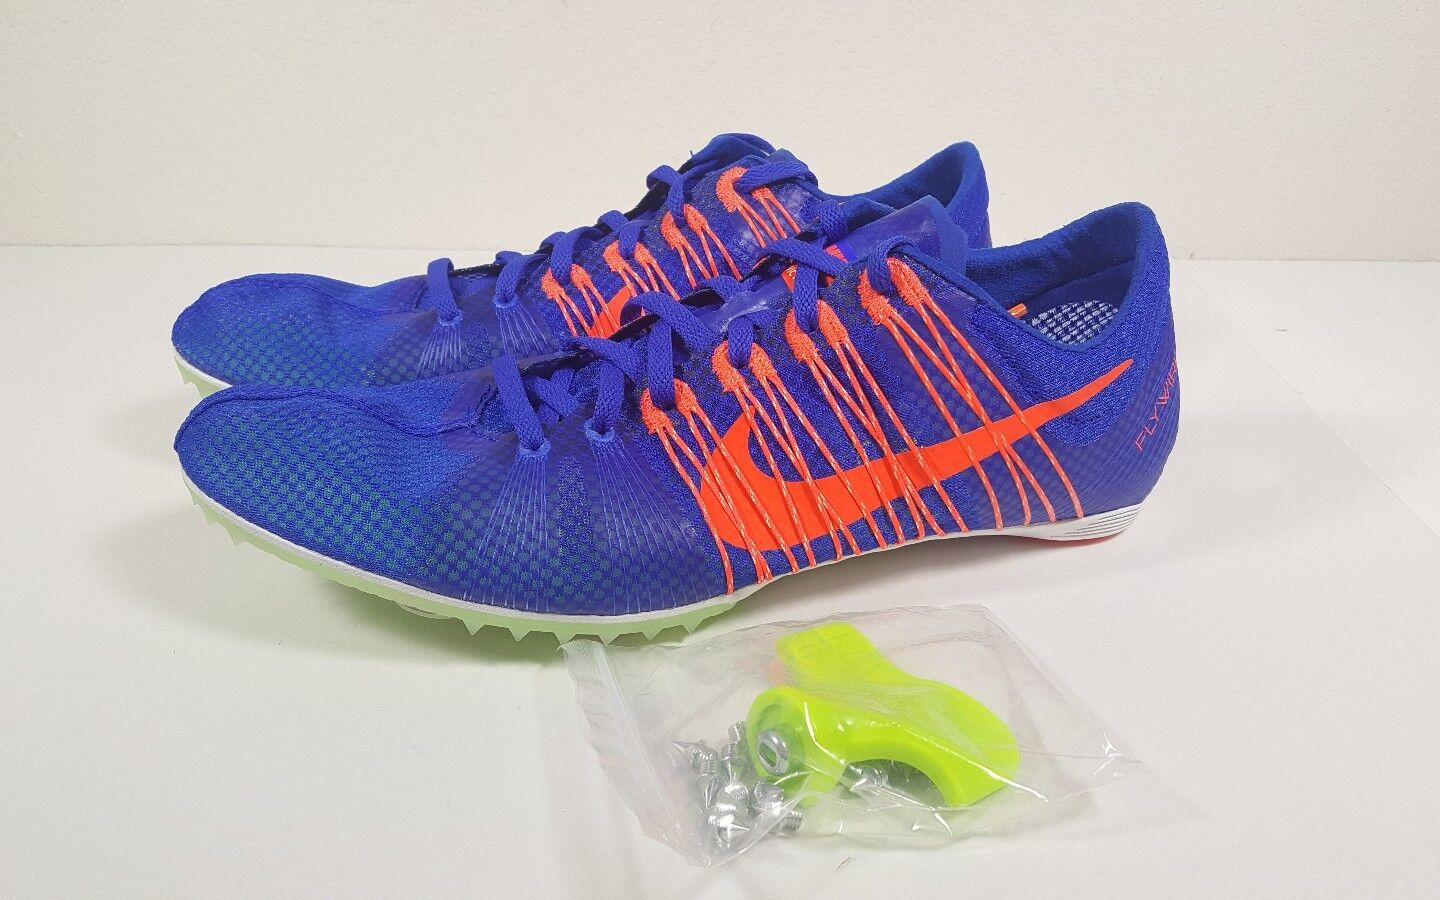 Comfortable and good-looking Nike Zoom Victory 2 Track Field Spikes Shoes Blue/Orange Comfortable